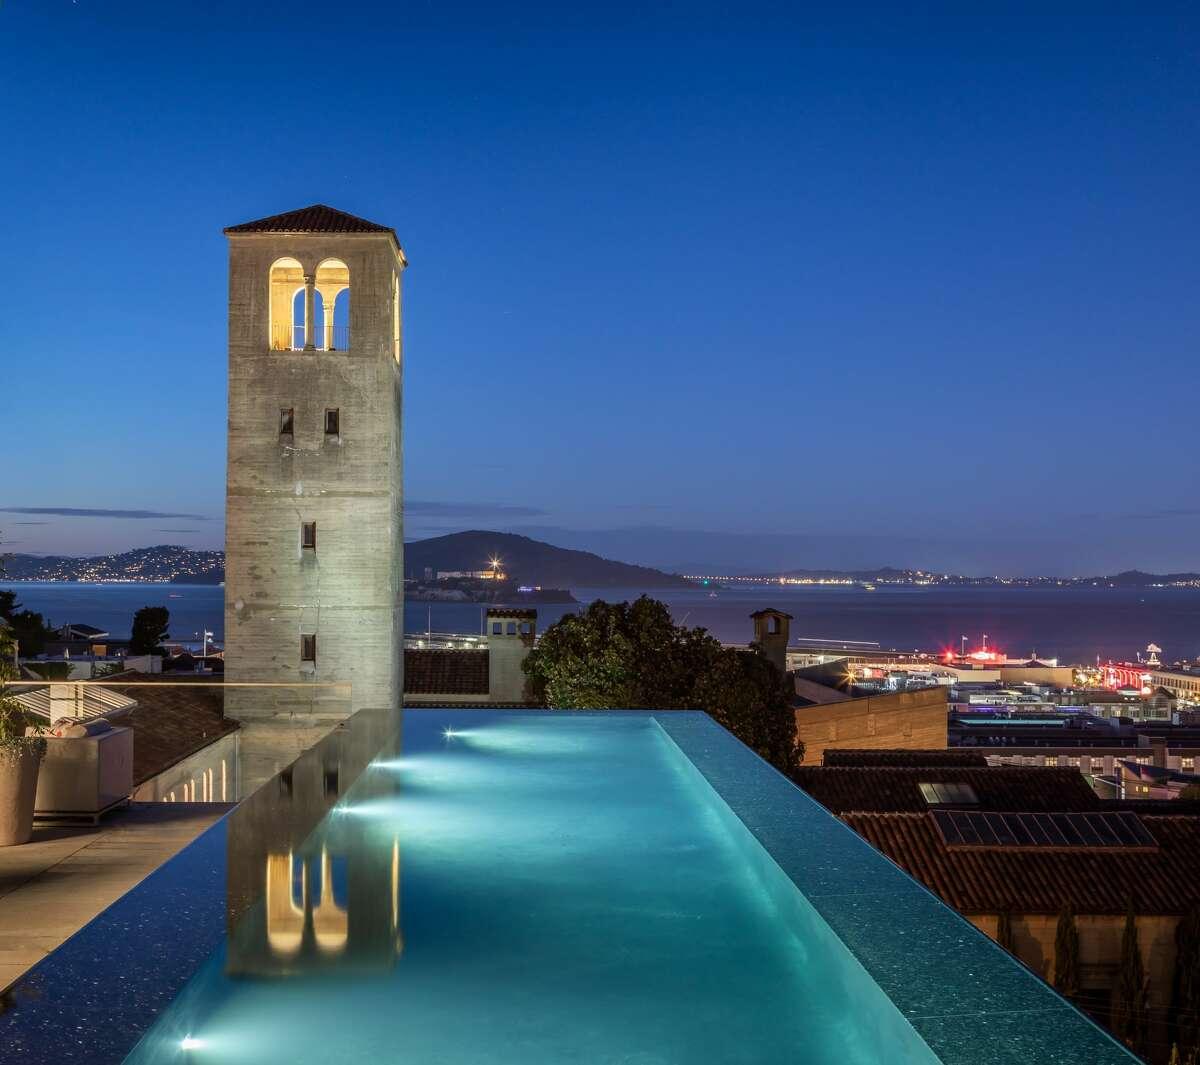 A 9,500-square-foot San Francisco home at 950 Lombard St. on the crest of Russian Hill is listed for $45 million.